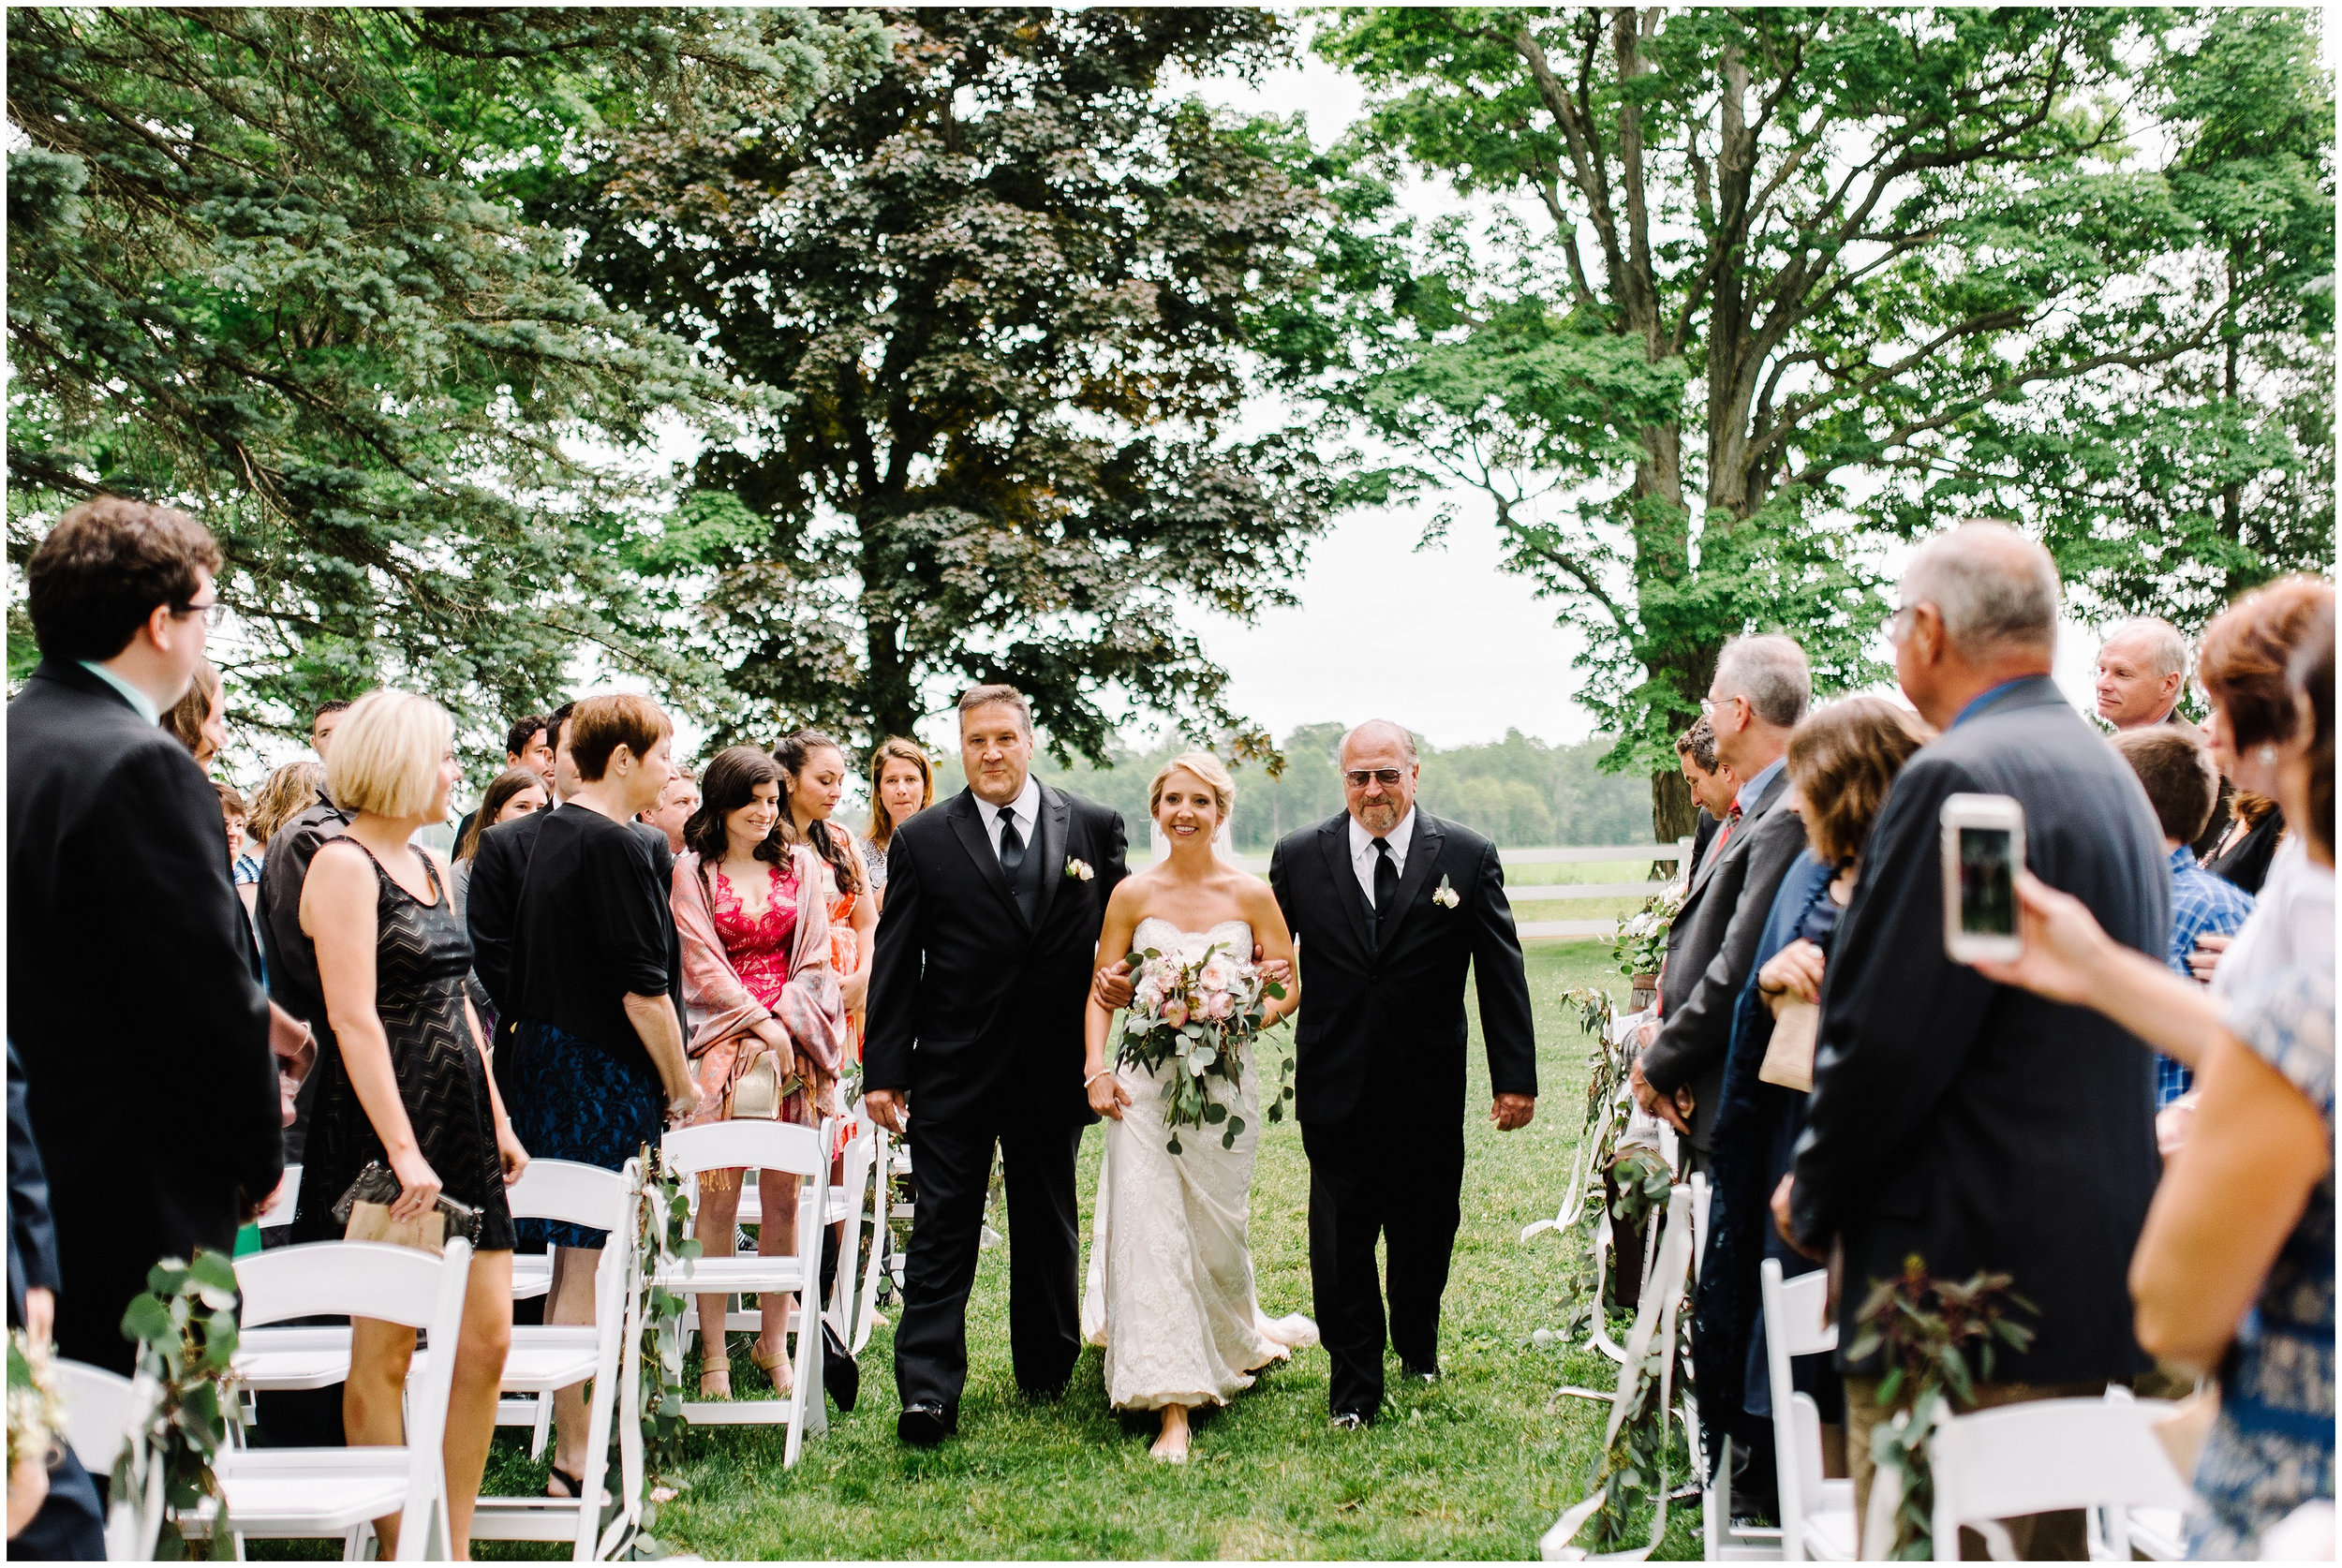 VineyardWedding.jpg